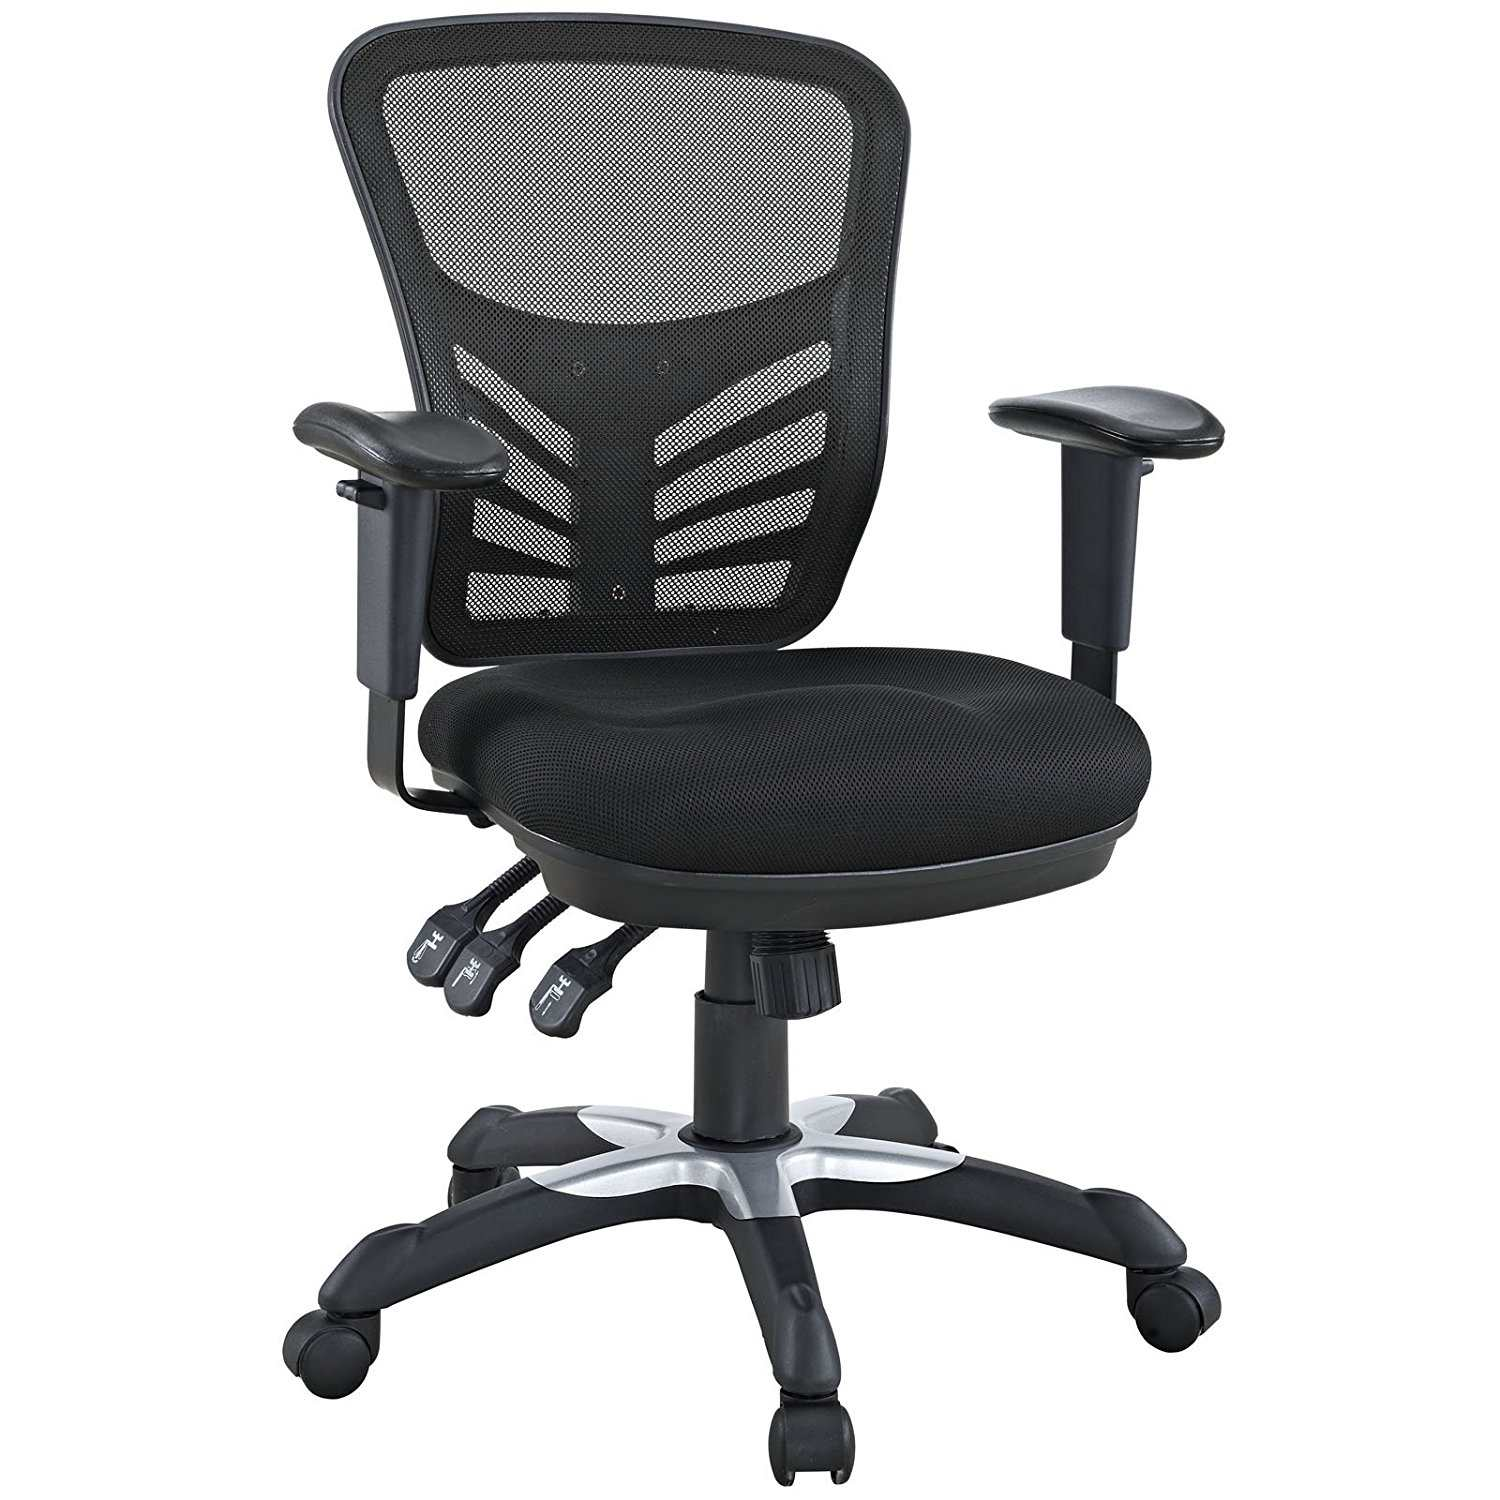 The 10 Best Budget Office Chairs Of 2021